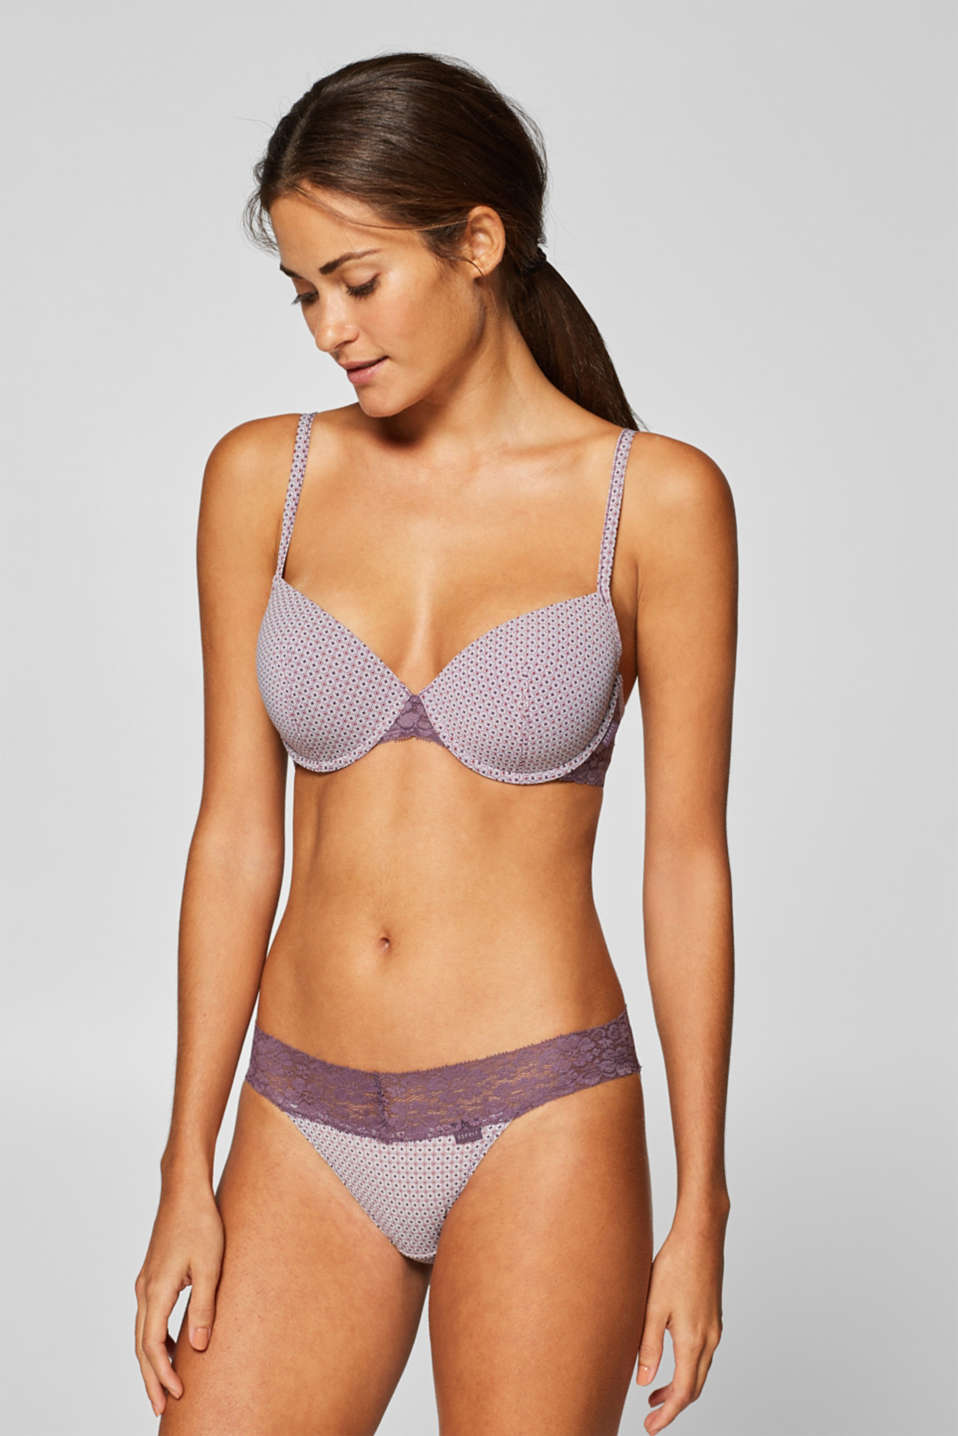 Esprit - Padded underwire bra with a mini print and lace